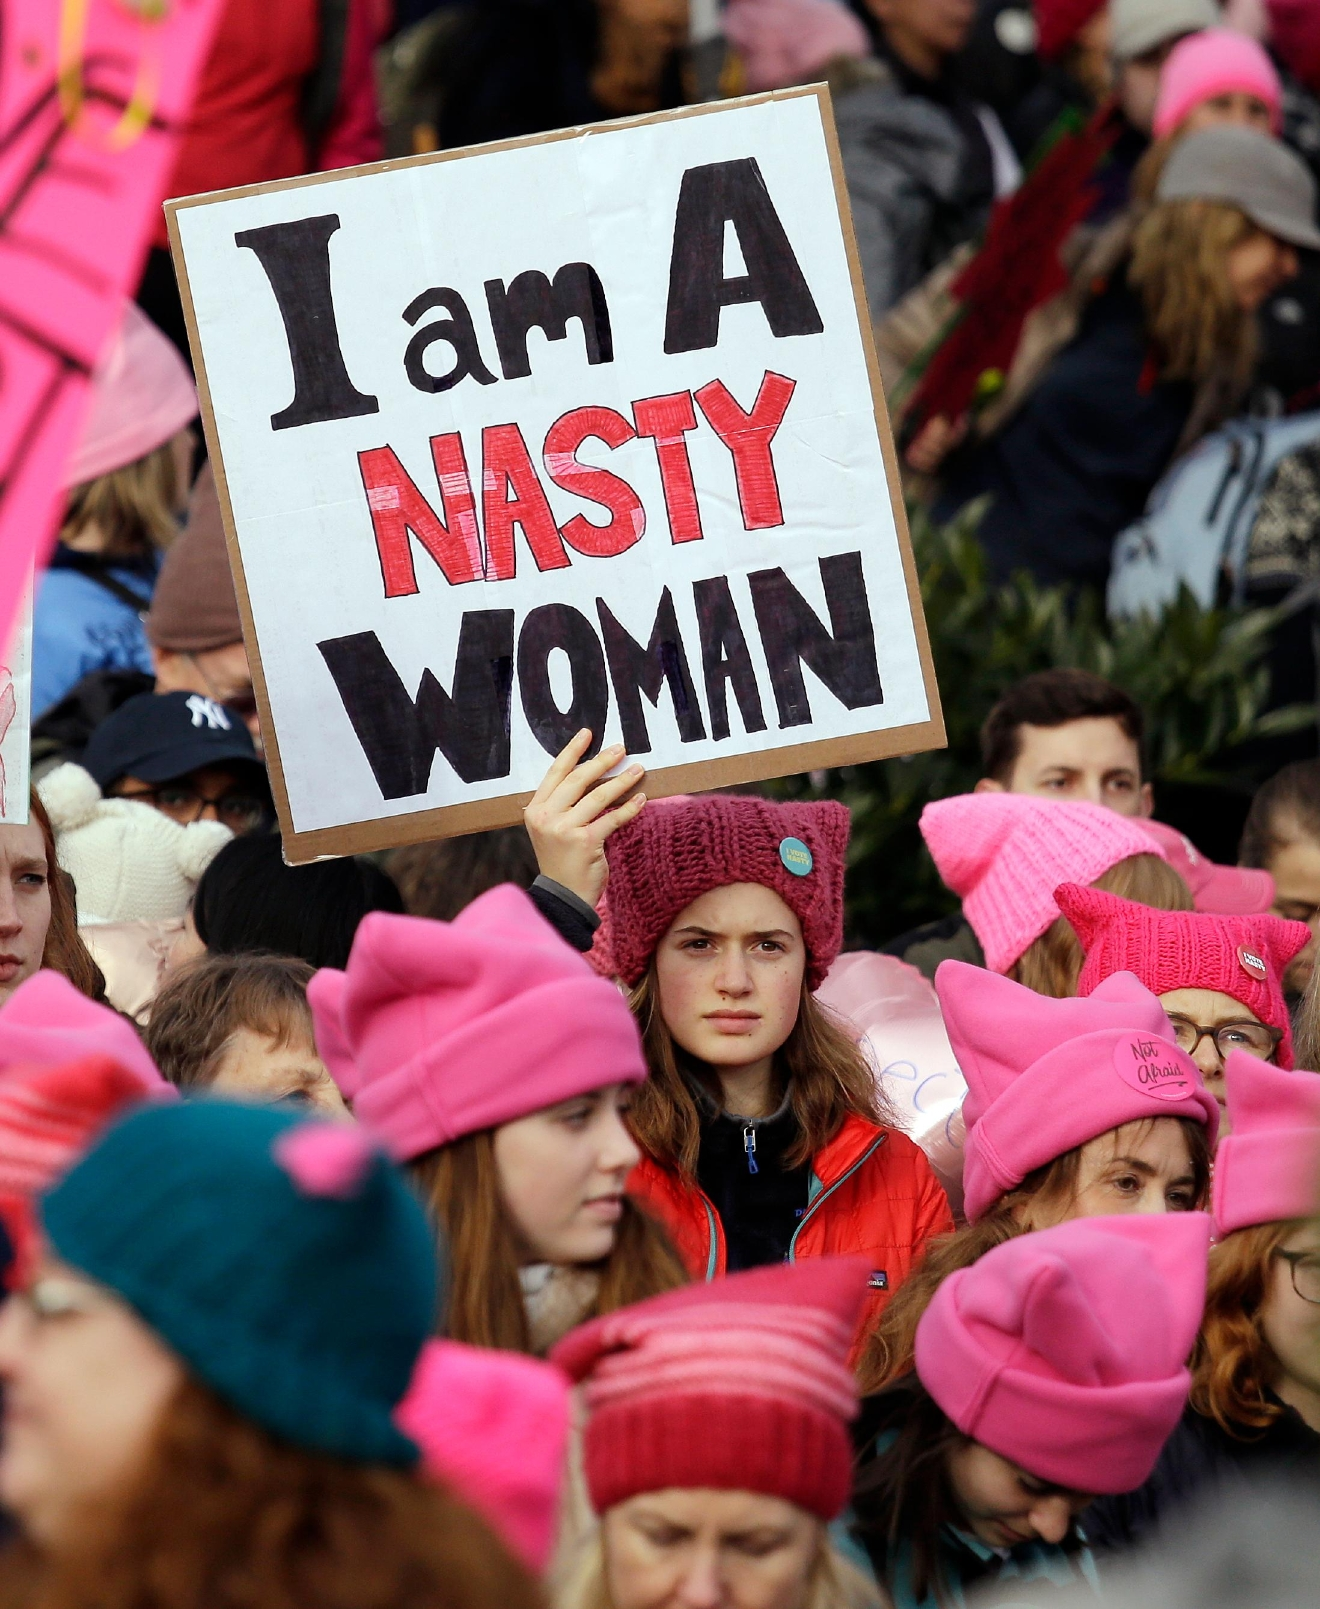 A woman holds a sign amidst a sea of pink caps before a women's march Saturday, Jan. 21, 2017, in Seattle. Women across the Pacific Northwest marched in solidarity with the Women's March on Washington and to send a message in support of women's rights and other causes. (AP Photo/Elaine Thompson)